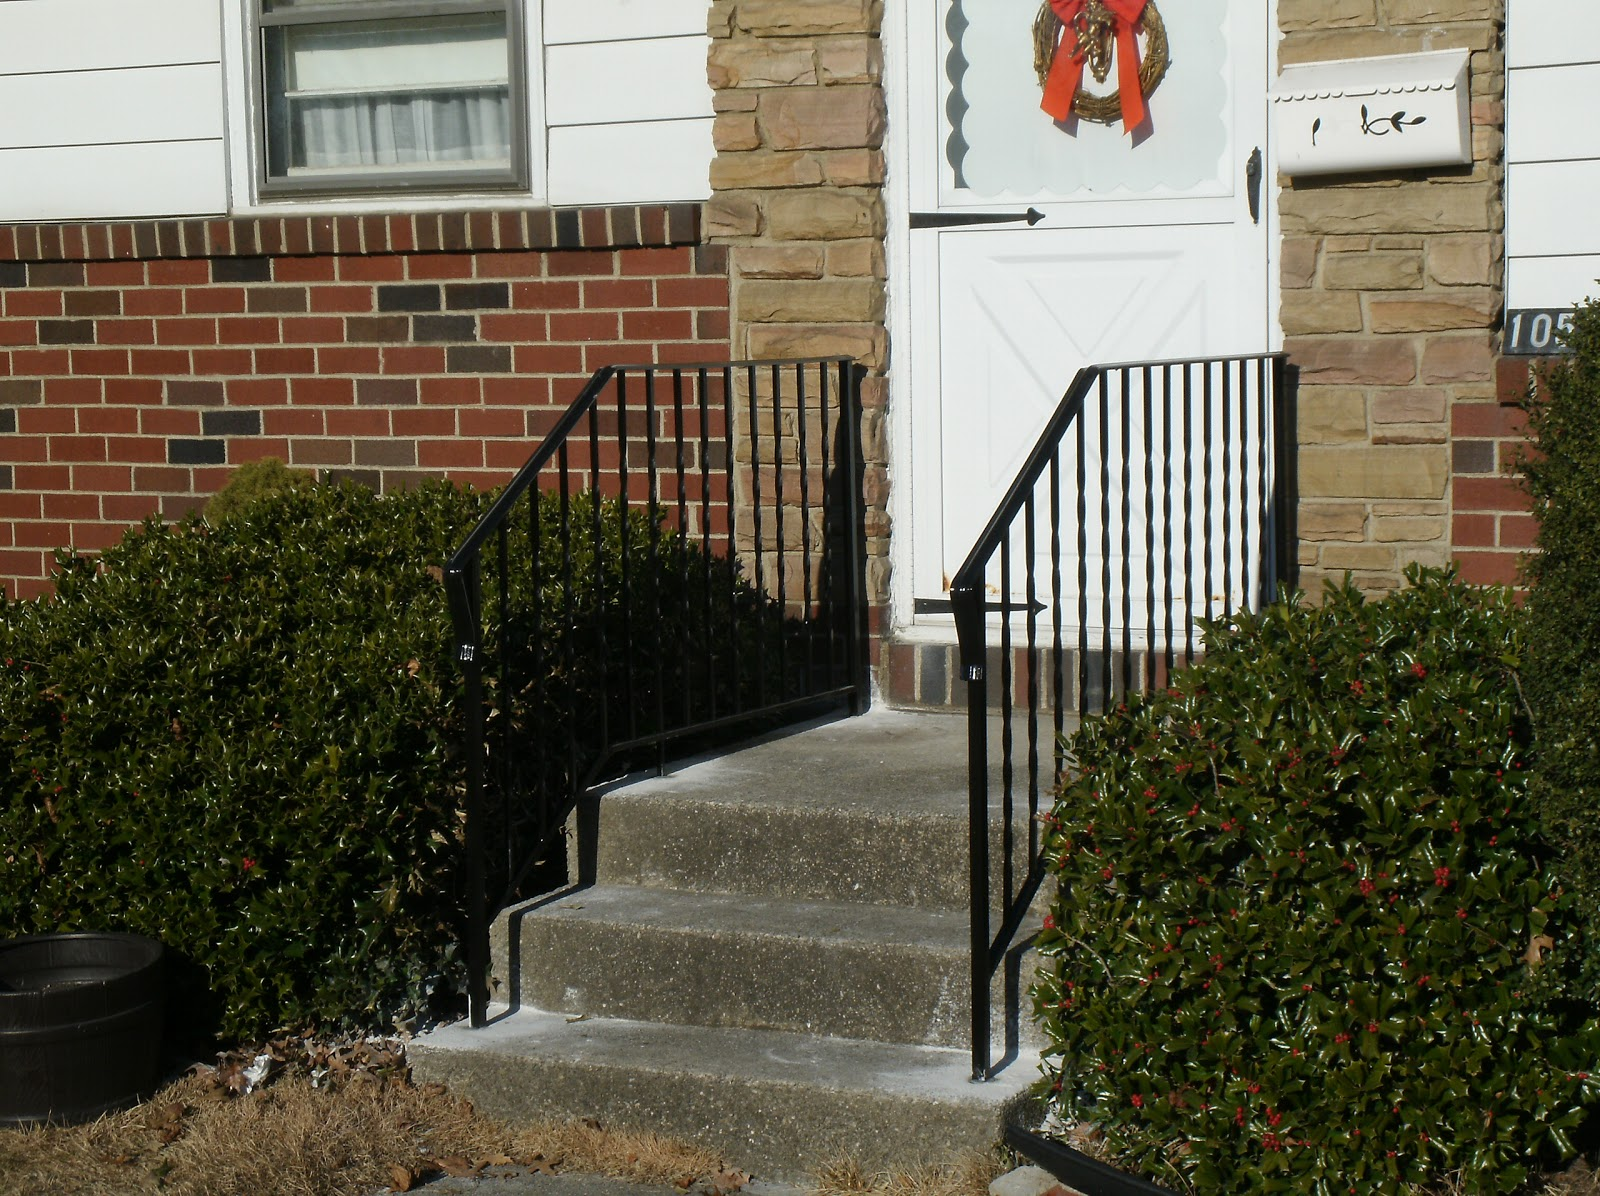 Home remodeling and improvements tips and how to 39 s wrought iron railing designs wrought iron Exterior wrought iron railing designs